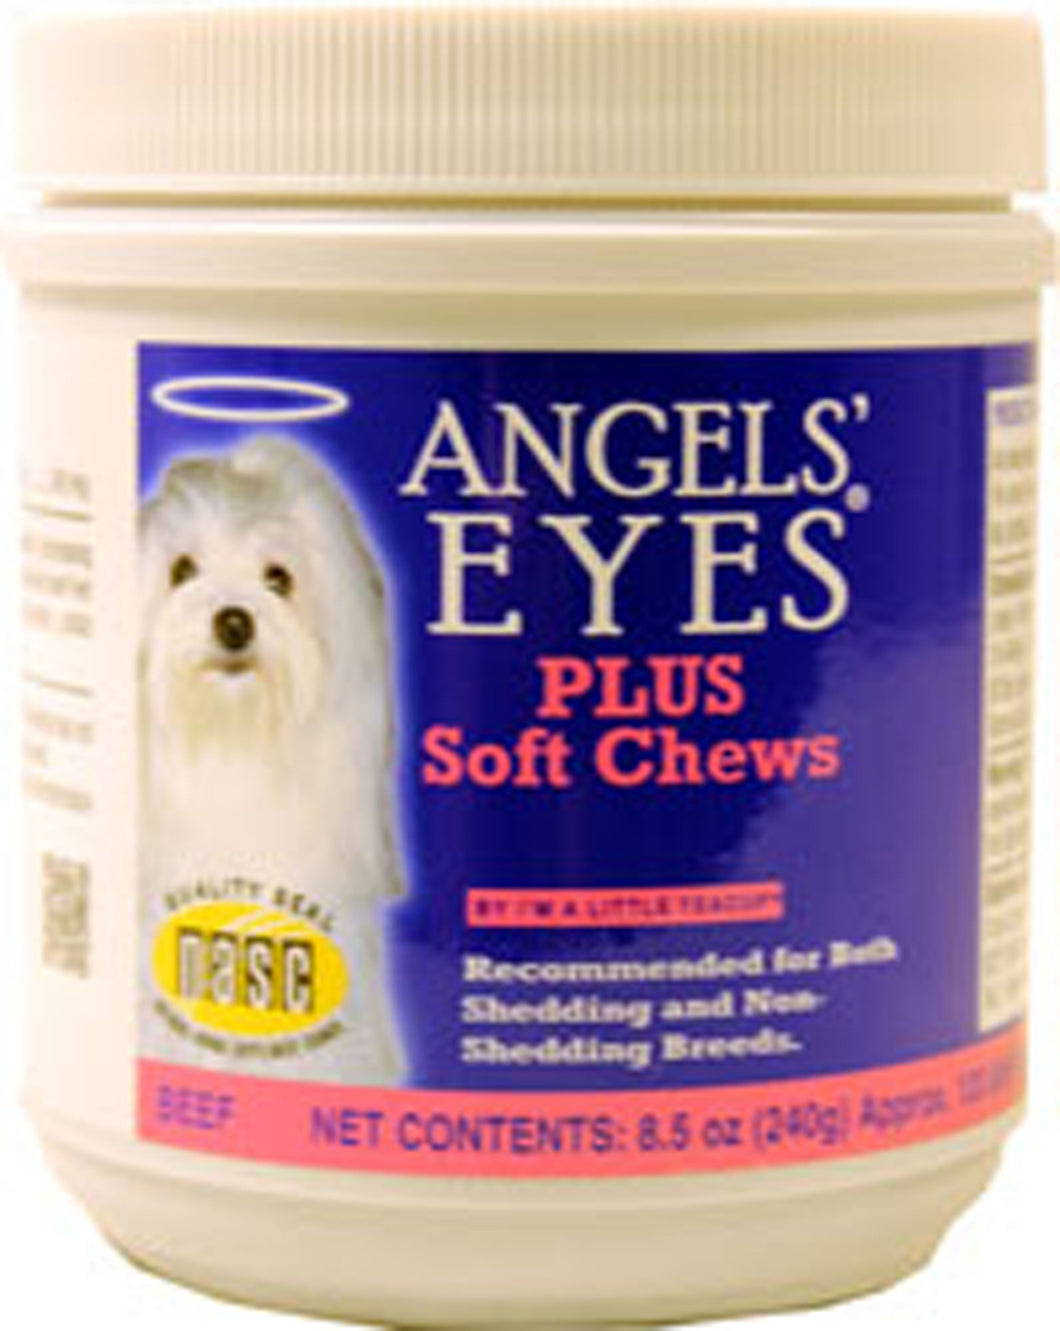 Angels' Eyes Plust Soft Chew For Dogs